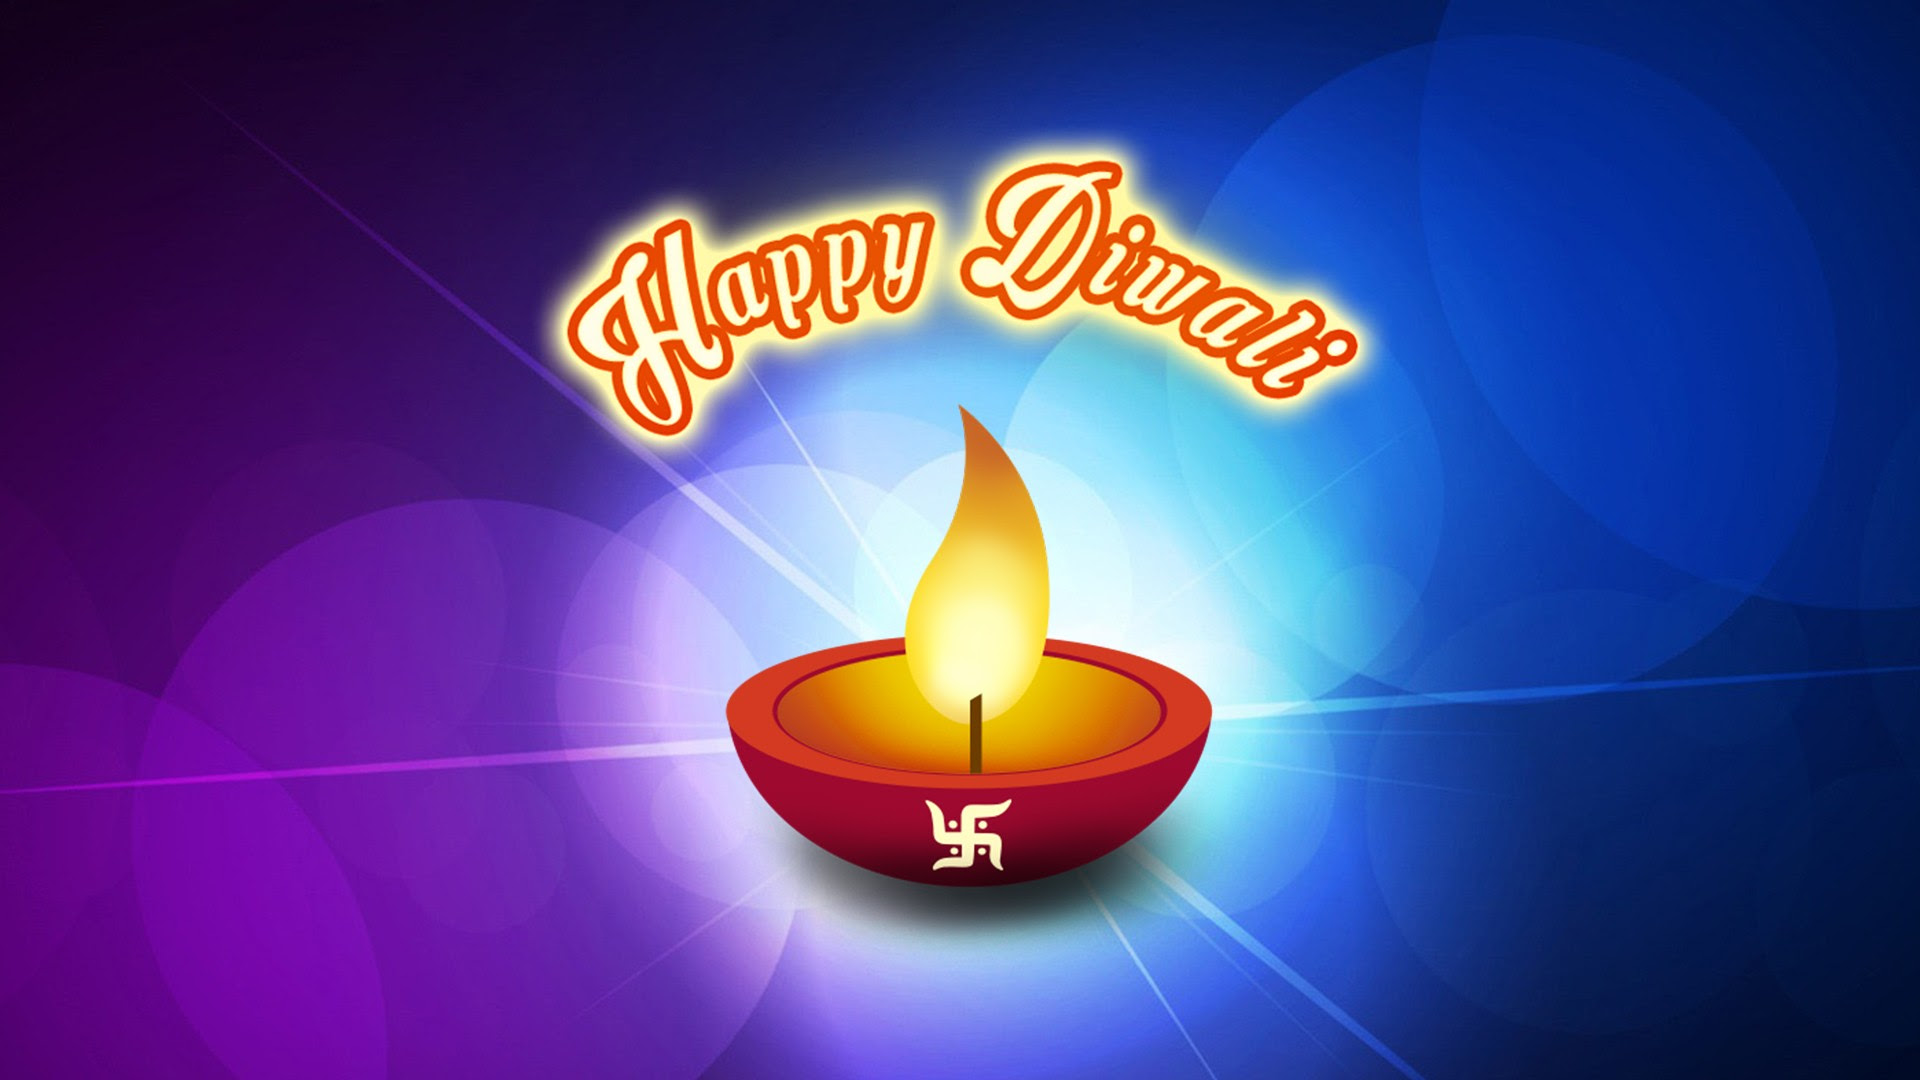 Diwali Wallpapers Hd Backgrounds Images Pics Photos Free Download